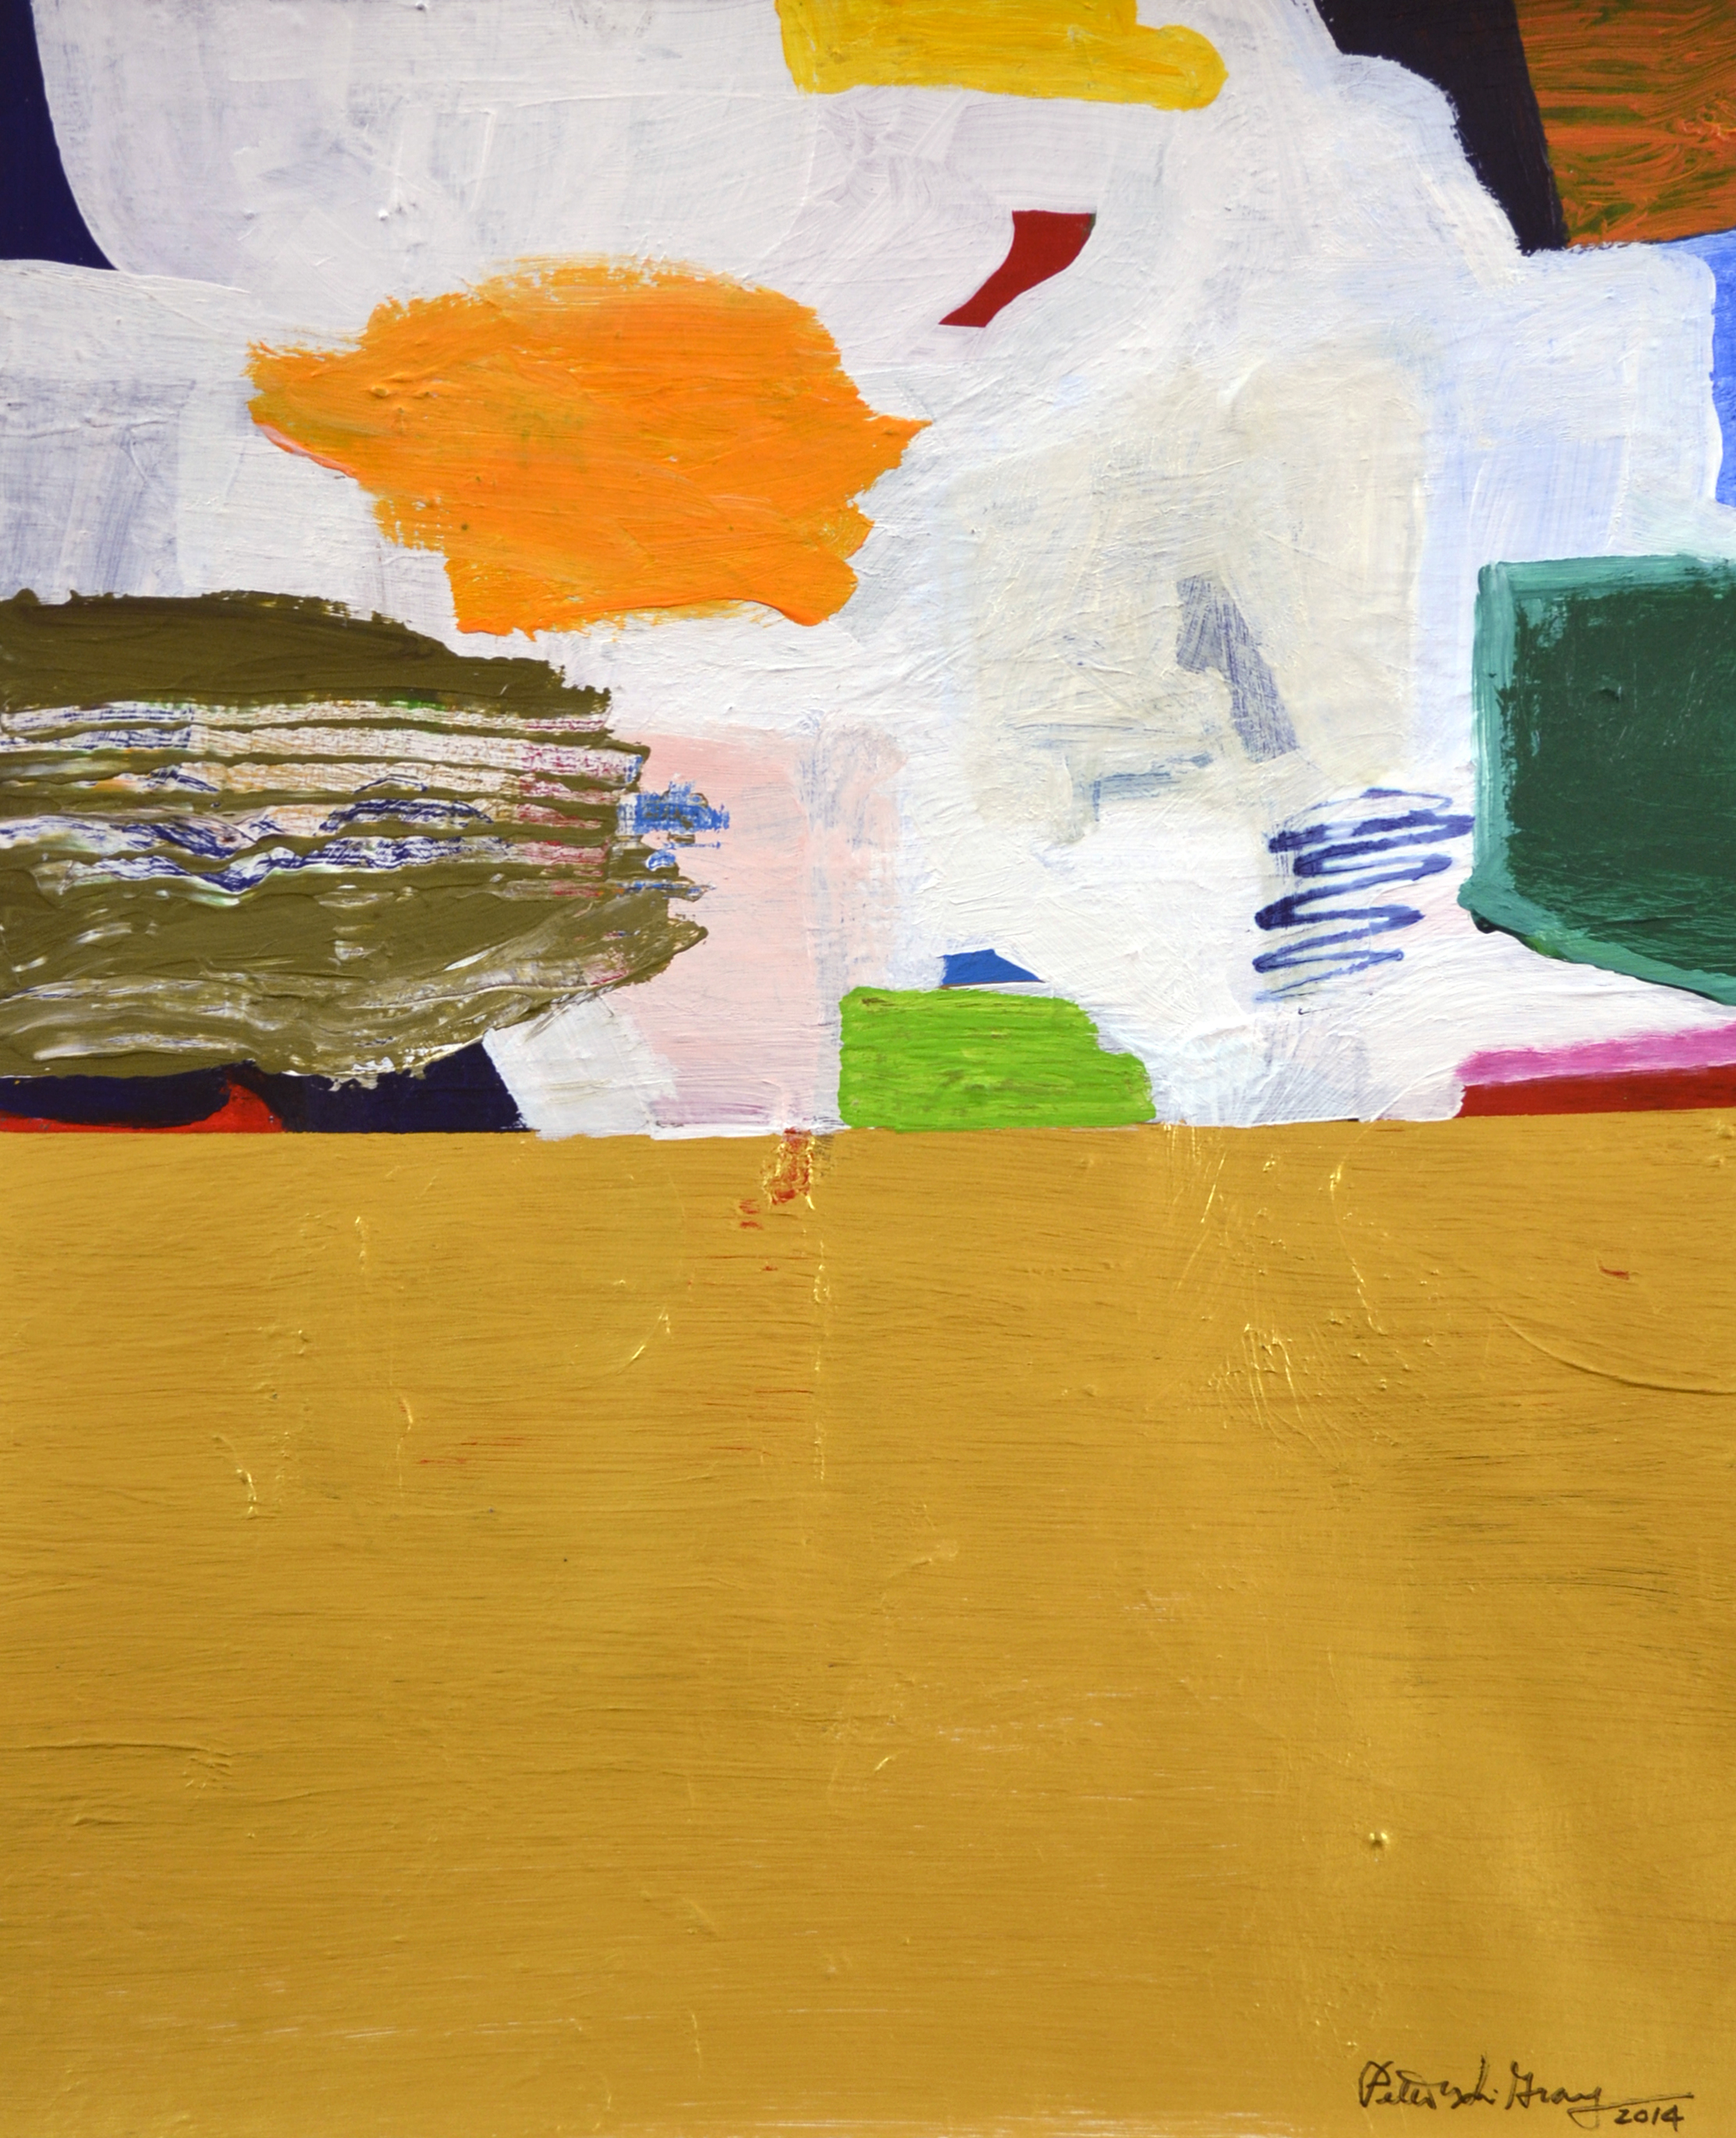 XOL Gallery - Peter Grey (USA) - _Fall Series I_ - 11 x 14 in - Acrylic on canvas paper - Baltimore, MD 2014 - $1,500.jpg